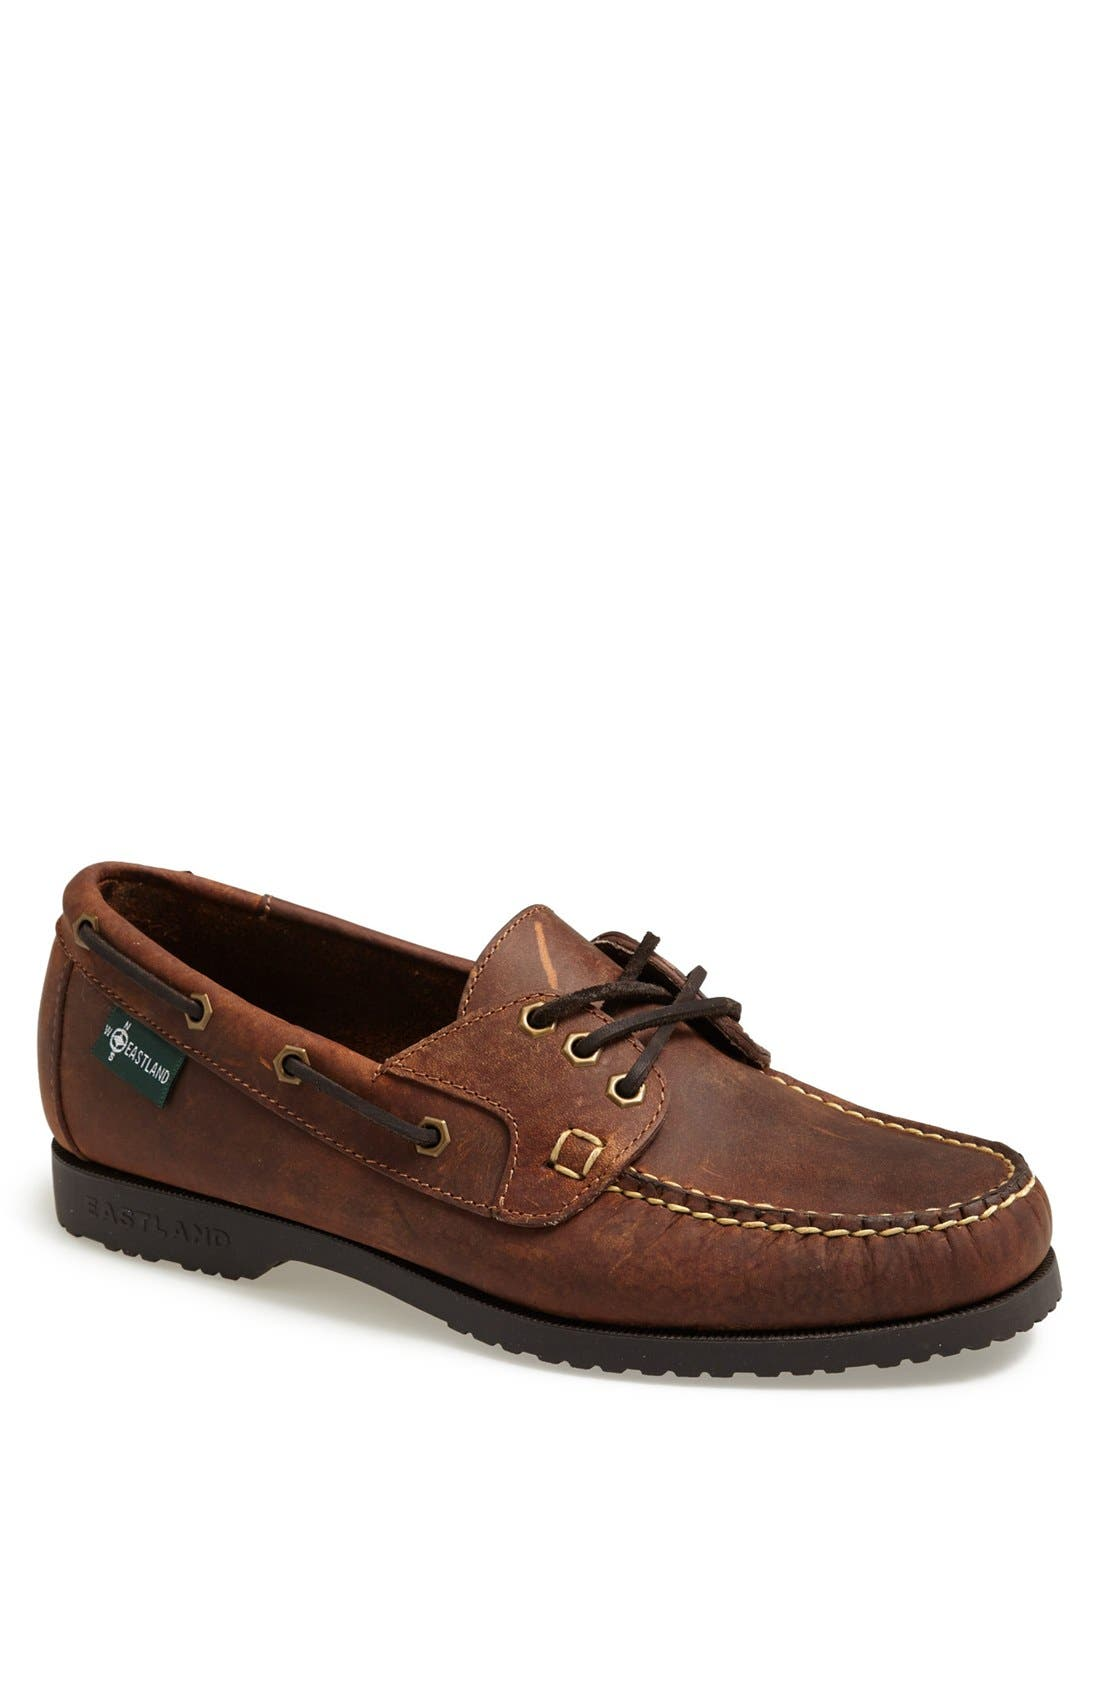 Alternate Image 1 Selected - Eastland 'Ashland 1955' Boat Shoe